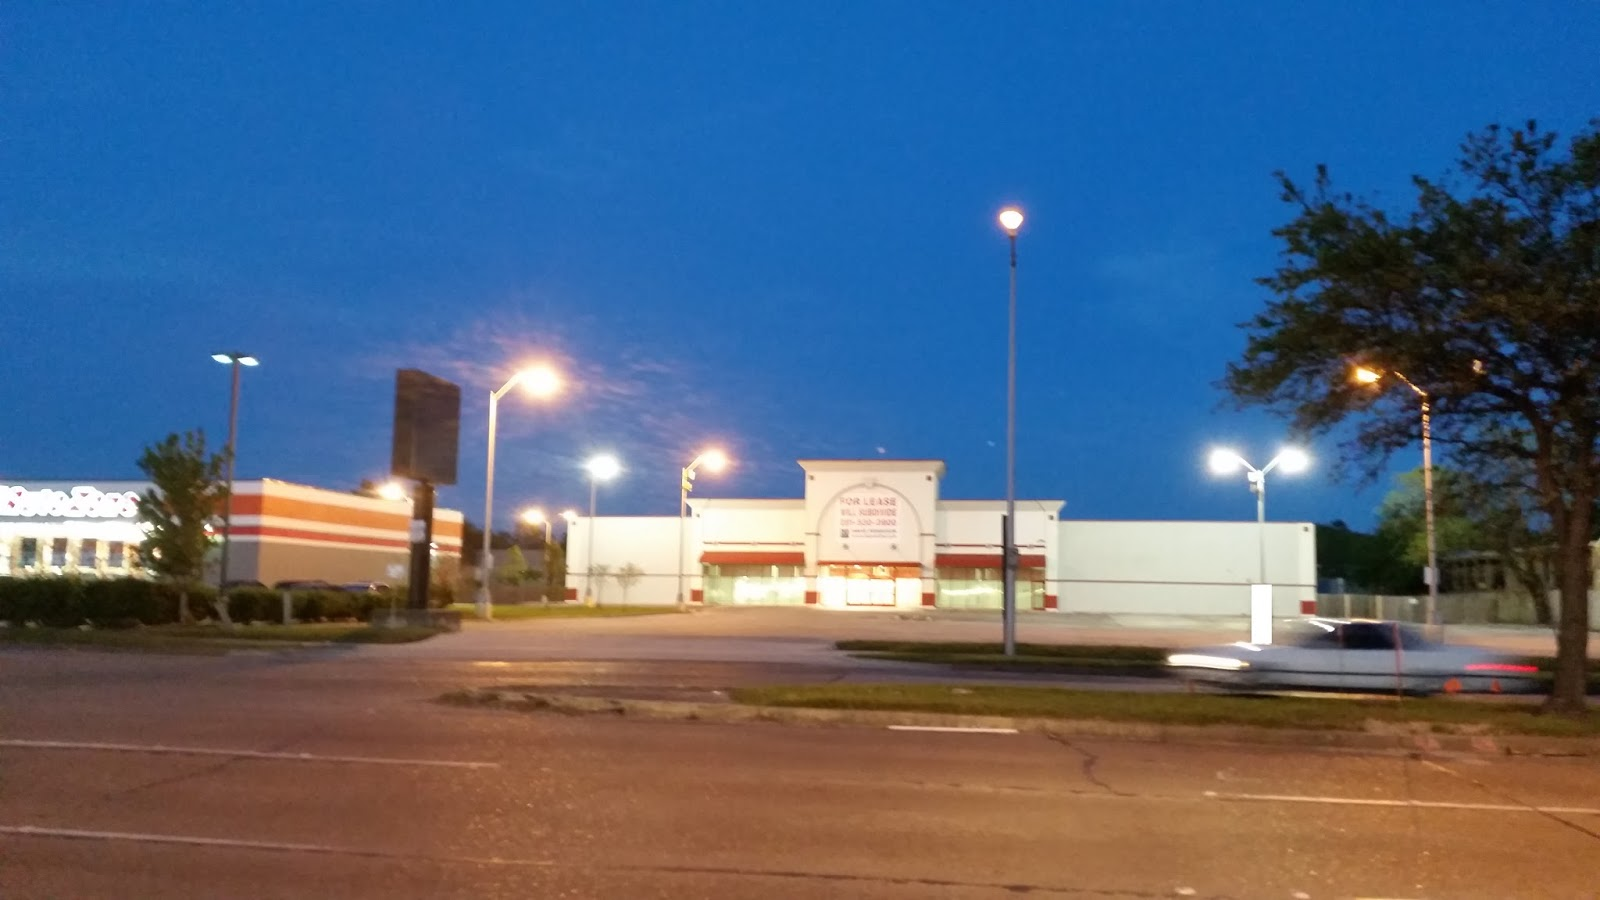 ALCO Houston Gessner Rd Abandoned 2014 Previously A 99 Cent Only Store